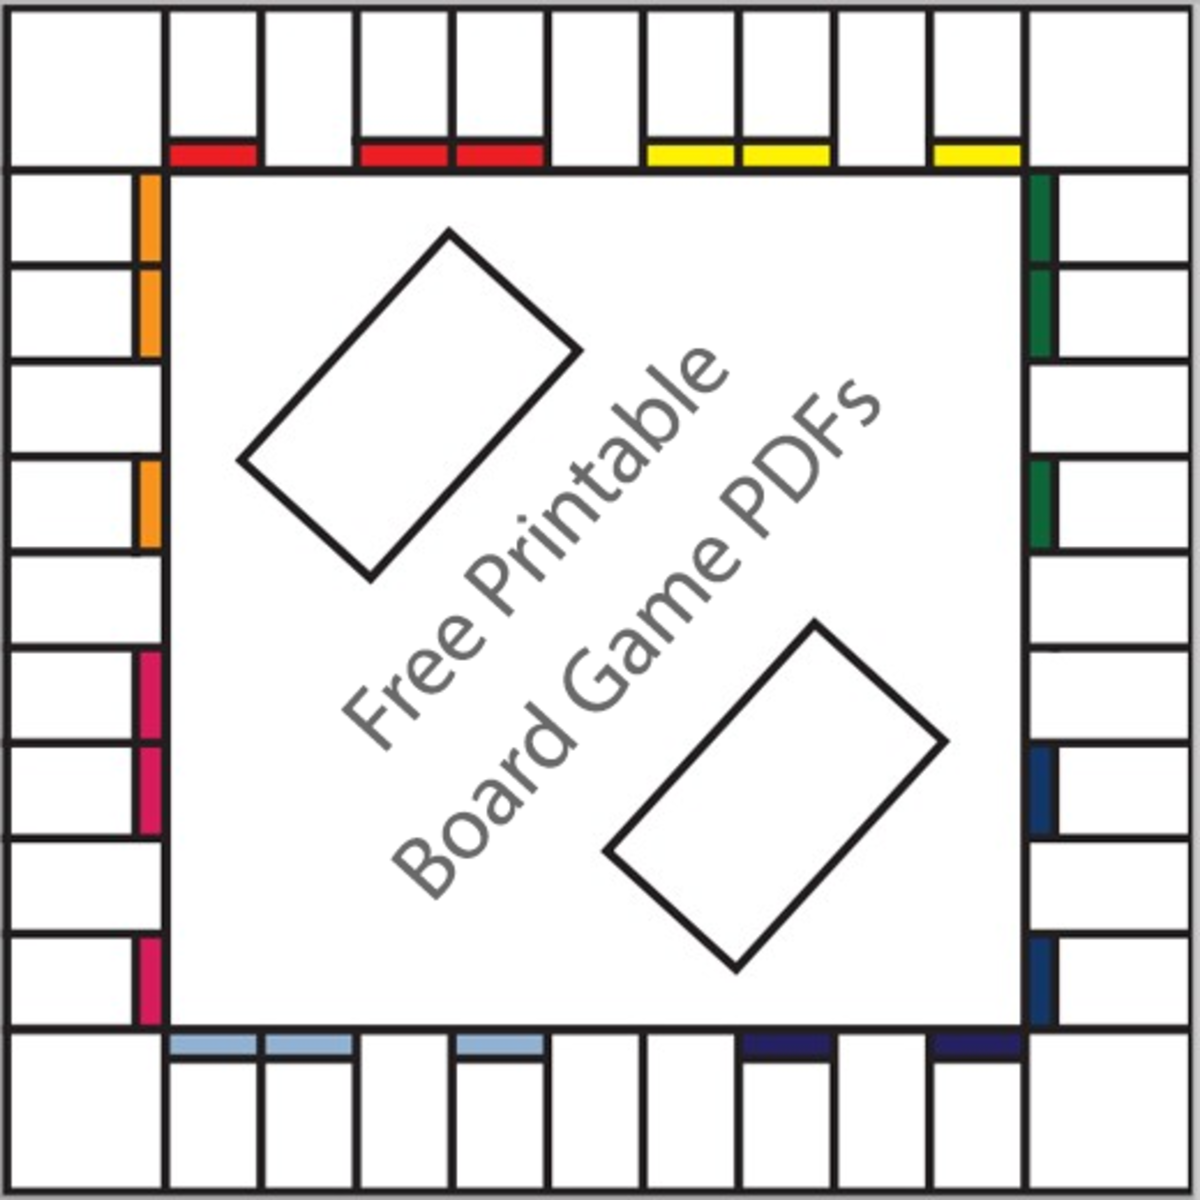 16 free printable board game templates hubpages for Online design games for adults